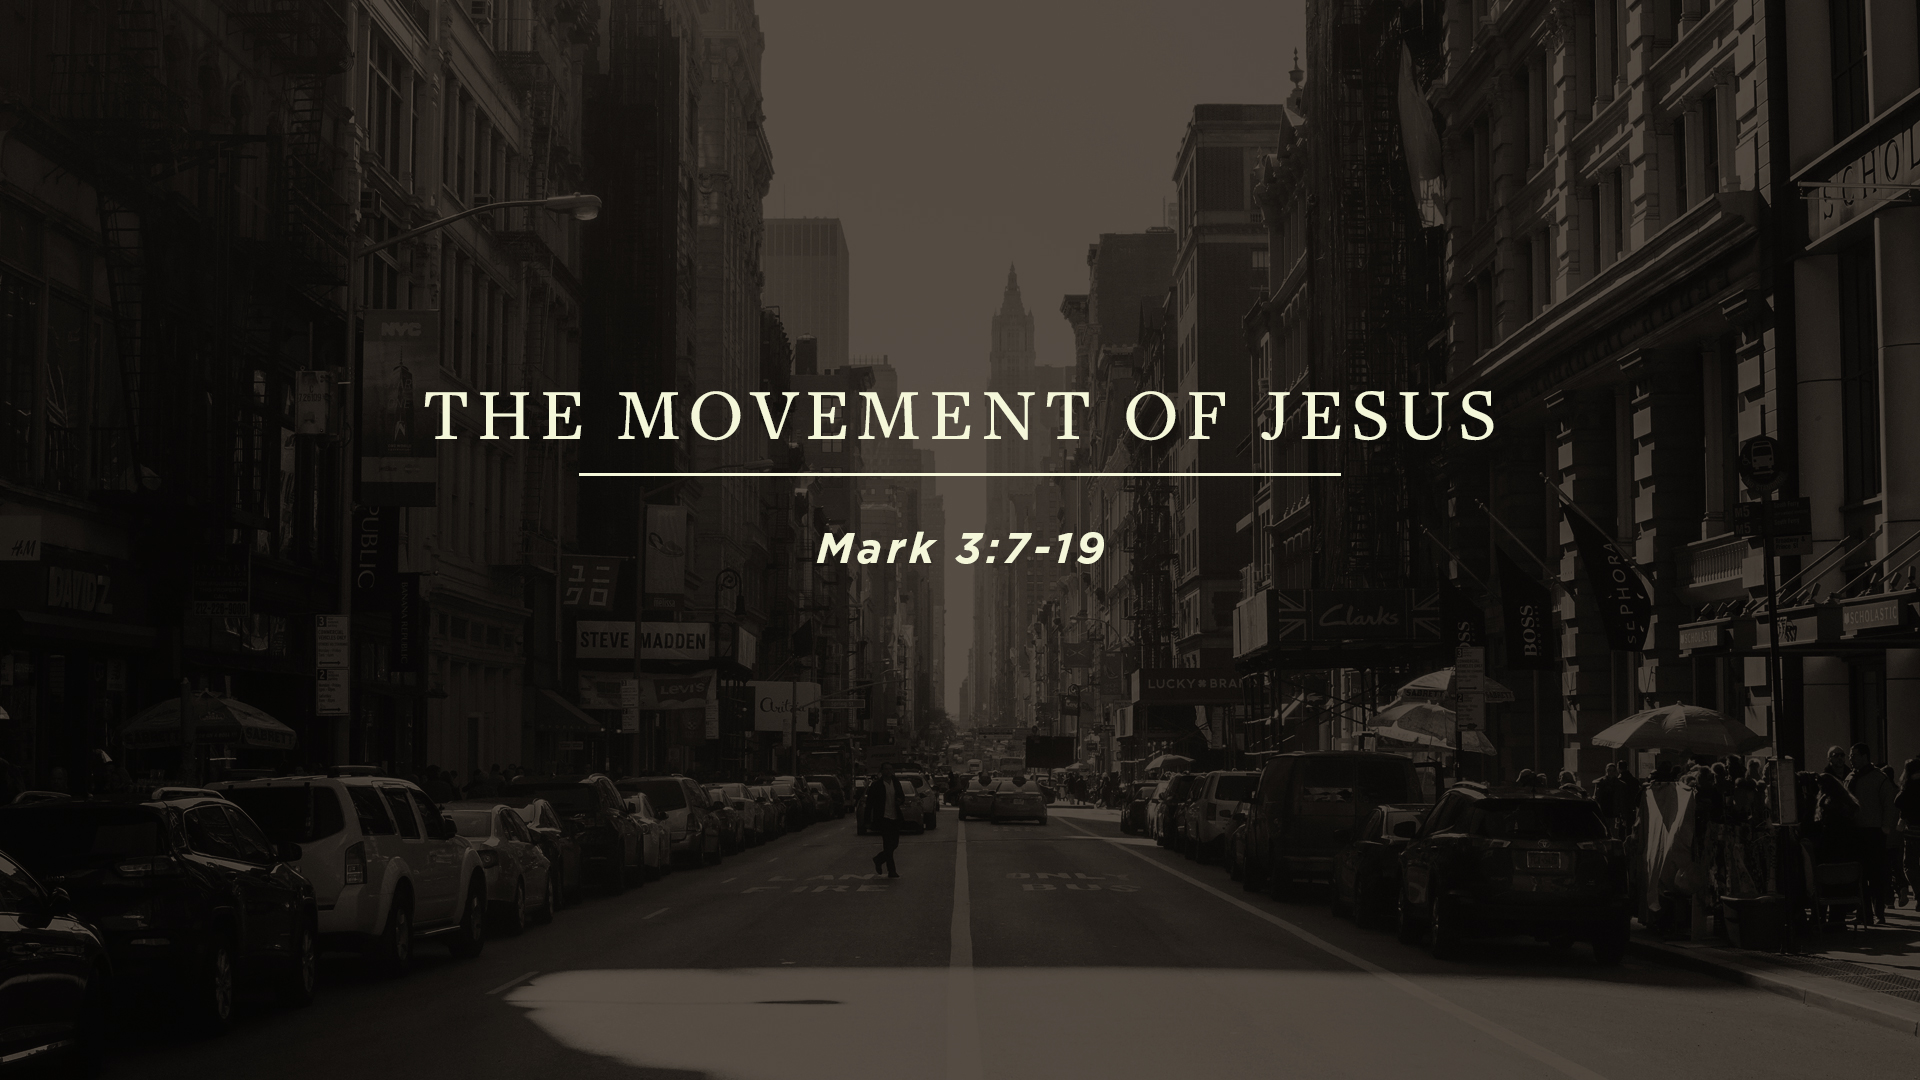 The Movement of Jesus